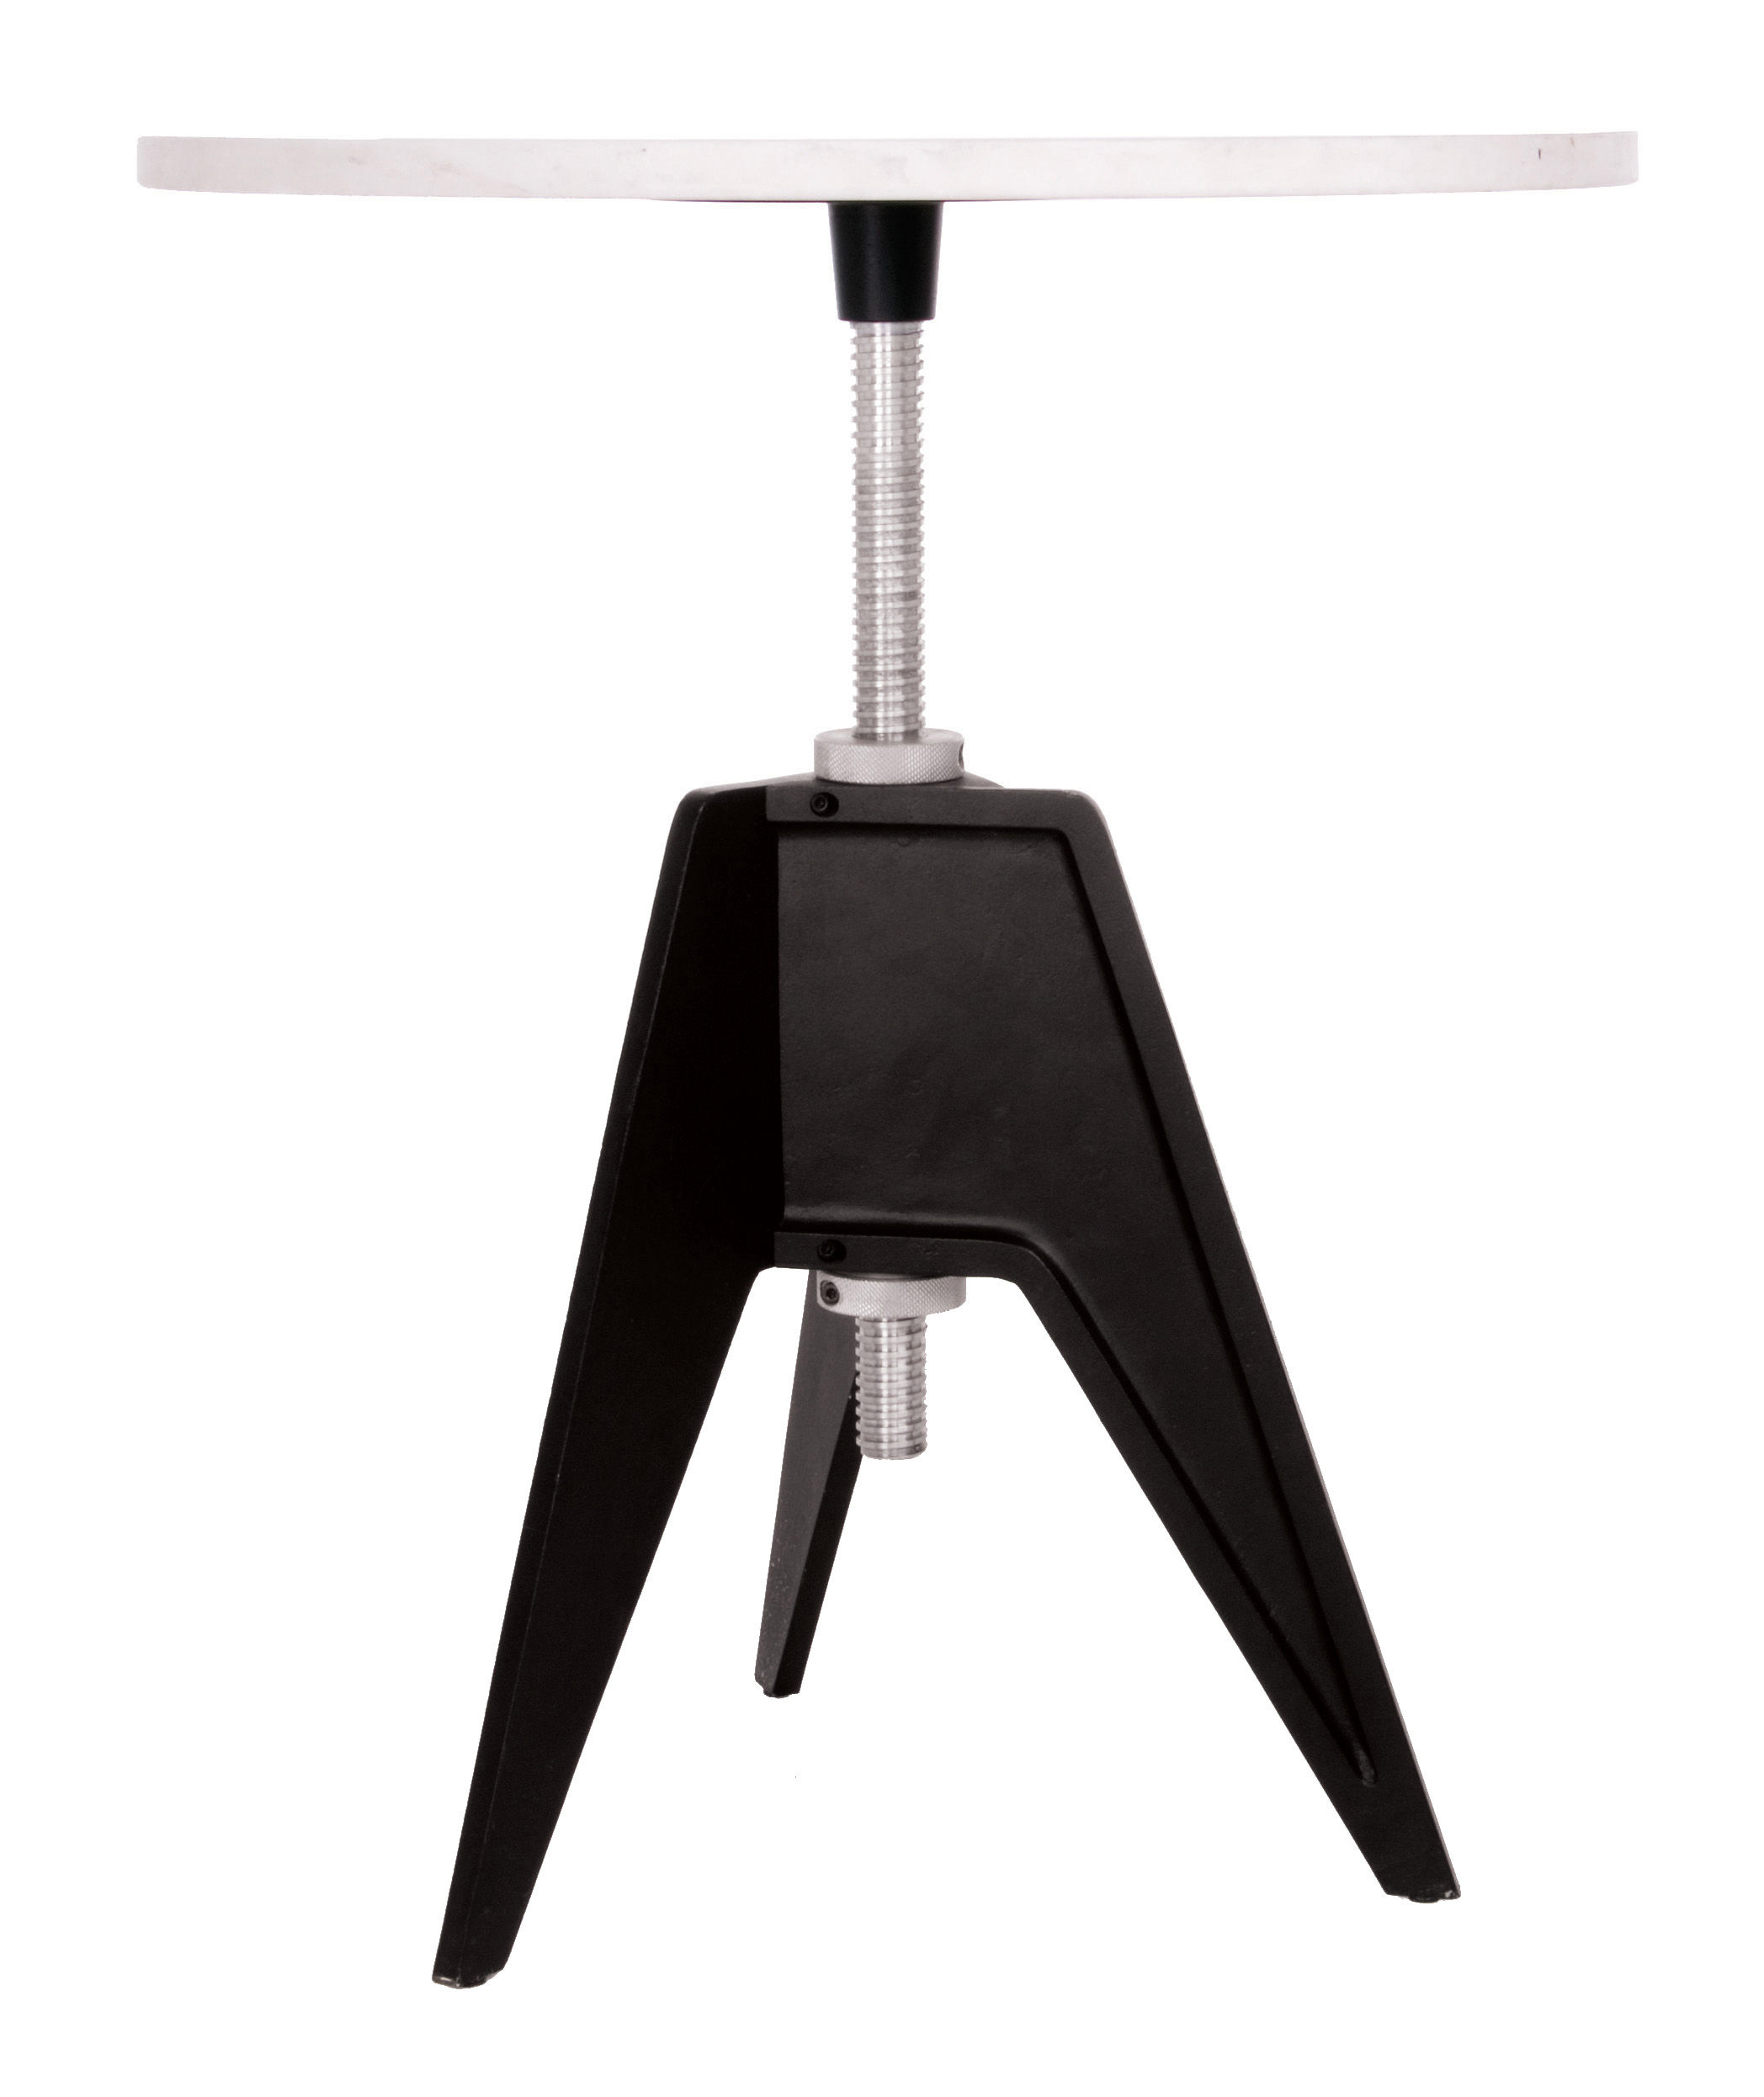 Furniture - Coffee Tables - Screw Adjustable height table - Adjustable height by Tom Dixon - Black and white - Aluminium, Cast iron, Marble